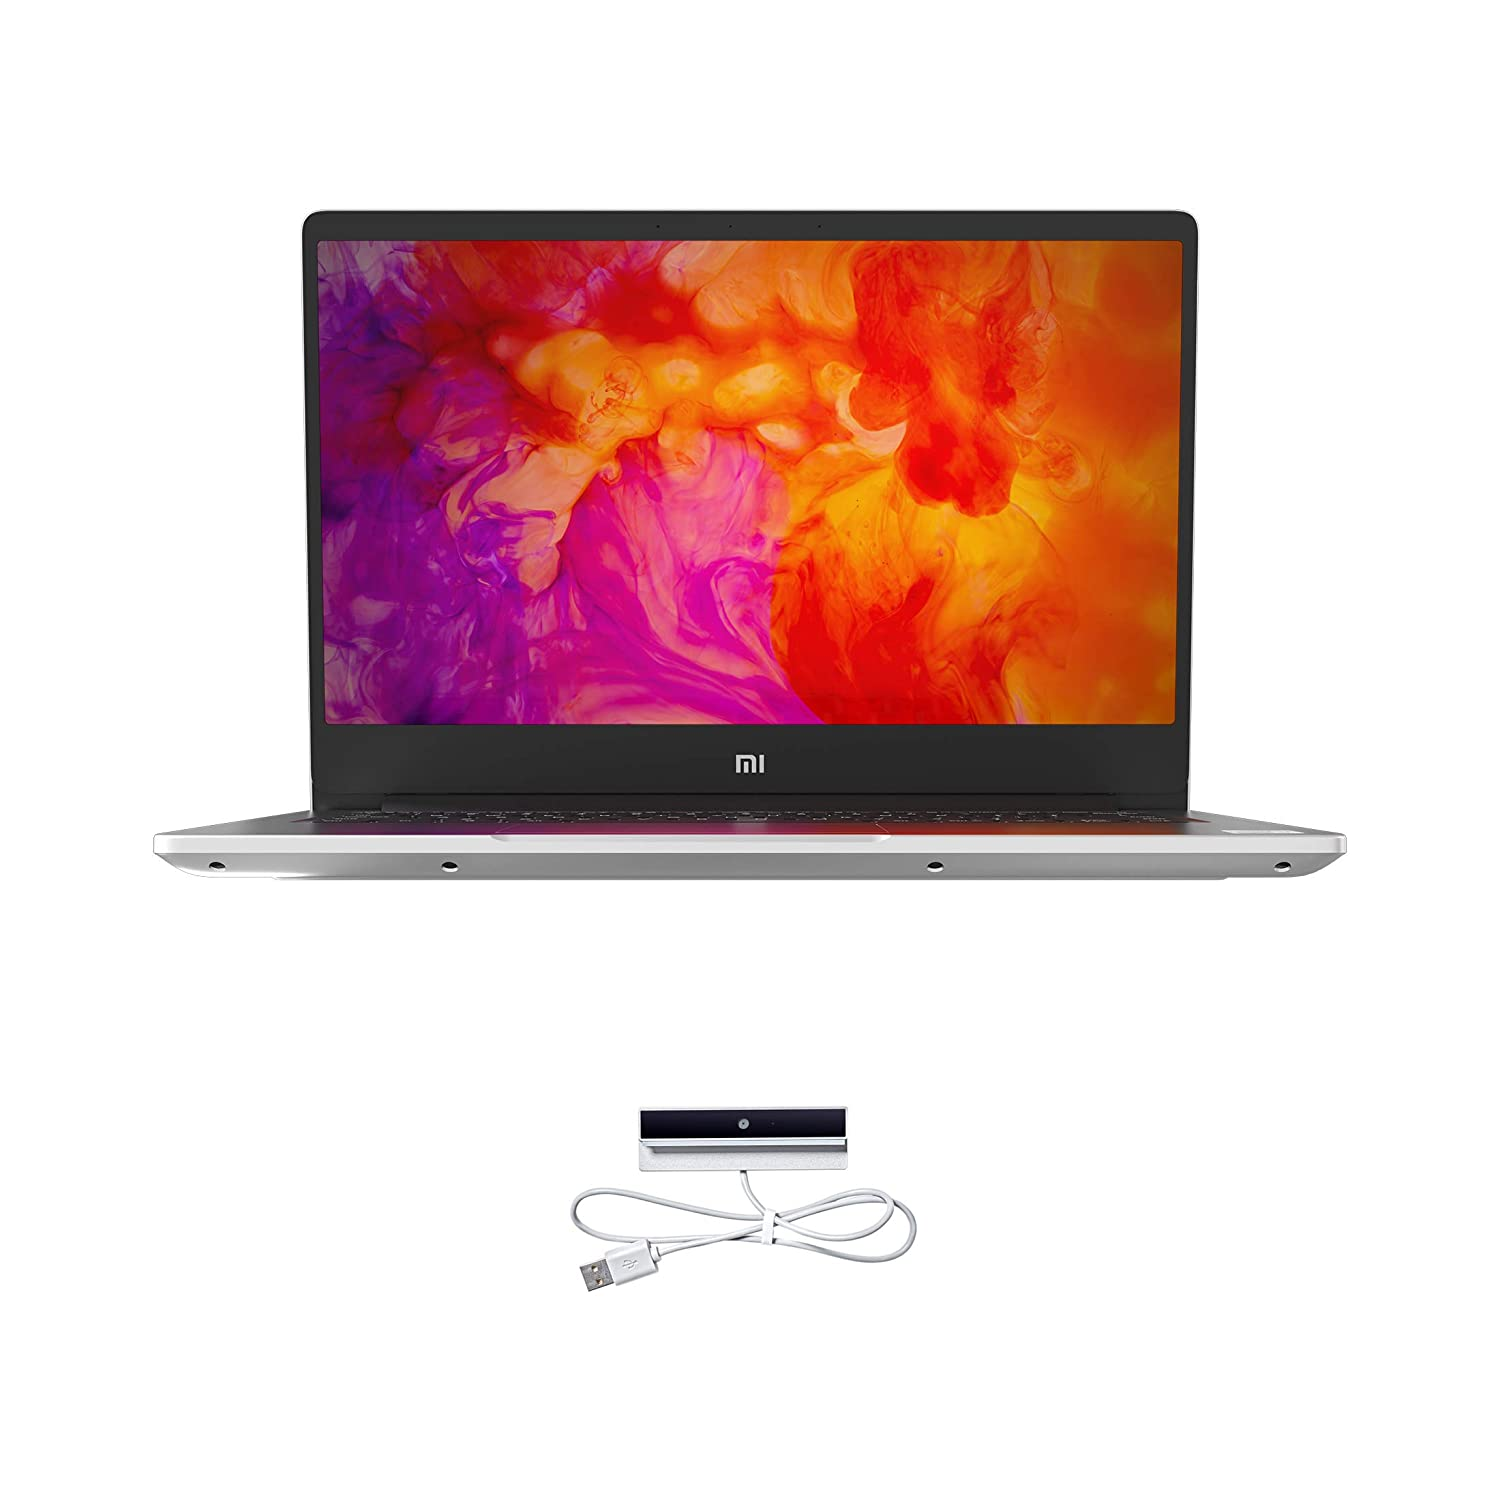 Mi Notebook 14 Intel Core i5-10210U 10th Gen Thin and Light Laptop(8GB/256GB SSD/Windows 10/Intel UHD Graphics/Silver/1.5Kg), XMA1901-FC+Webcam